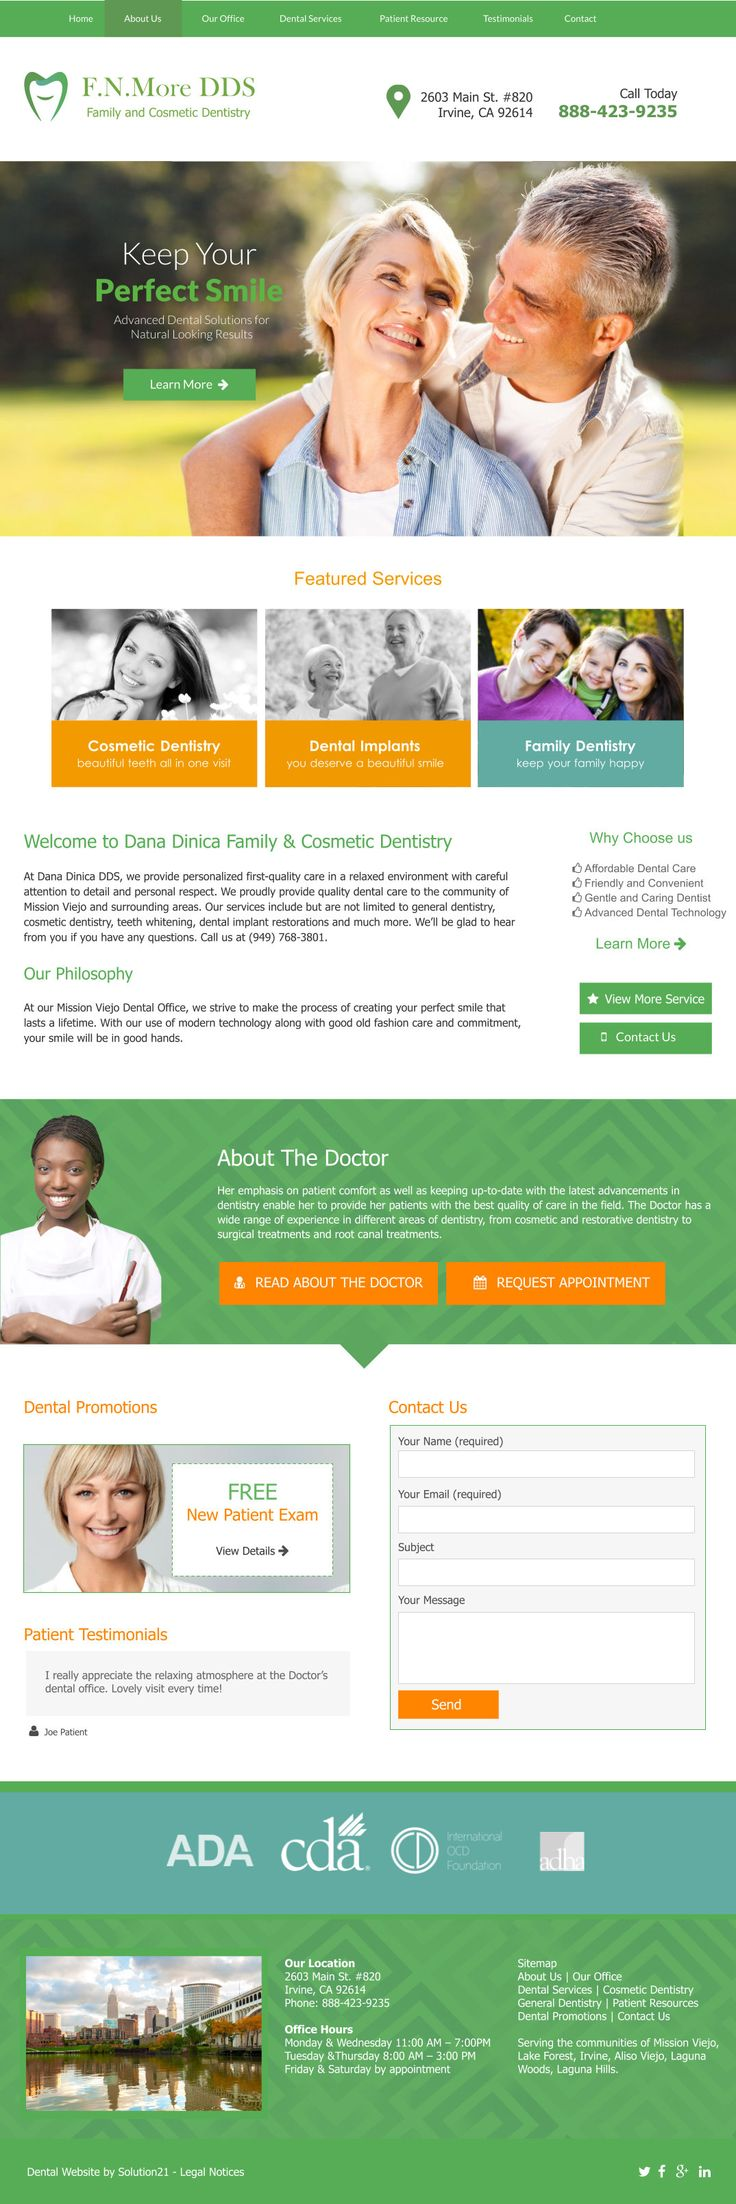 Dental web design concept by our talented Graphic Design team! Websites for Dentists by Solution21 <3